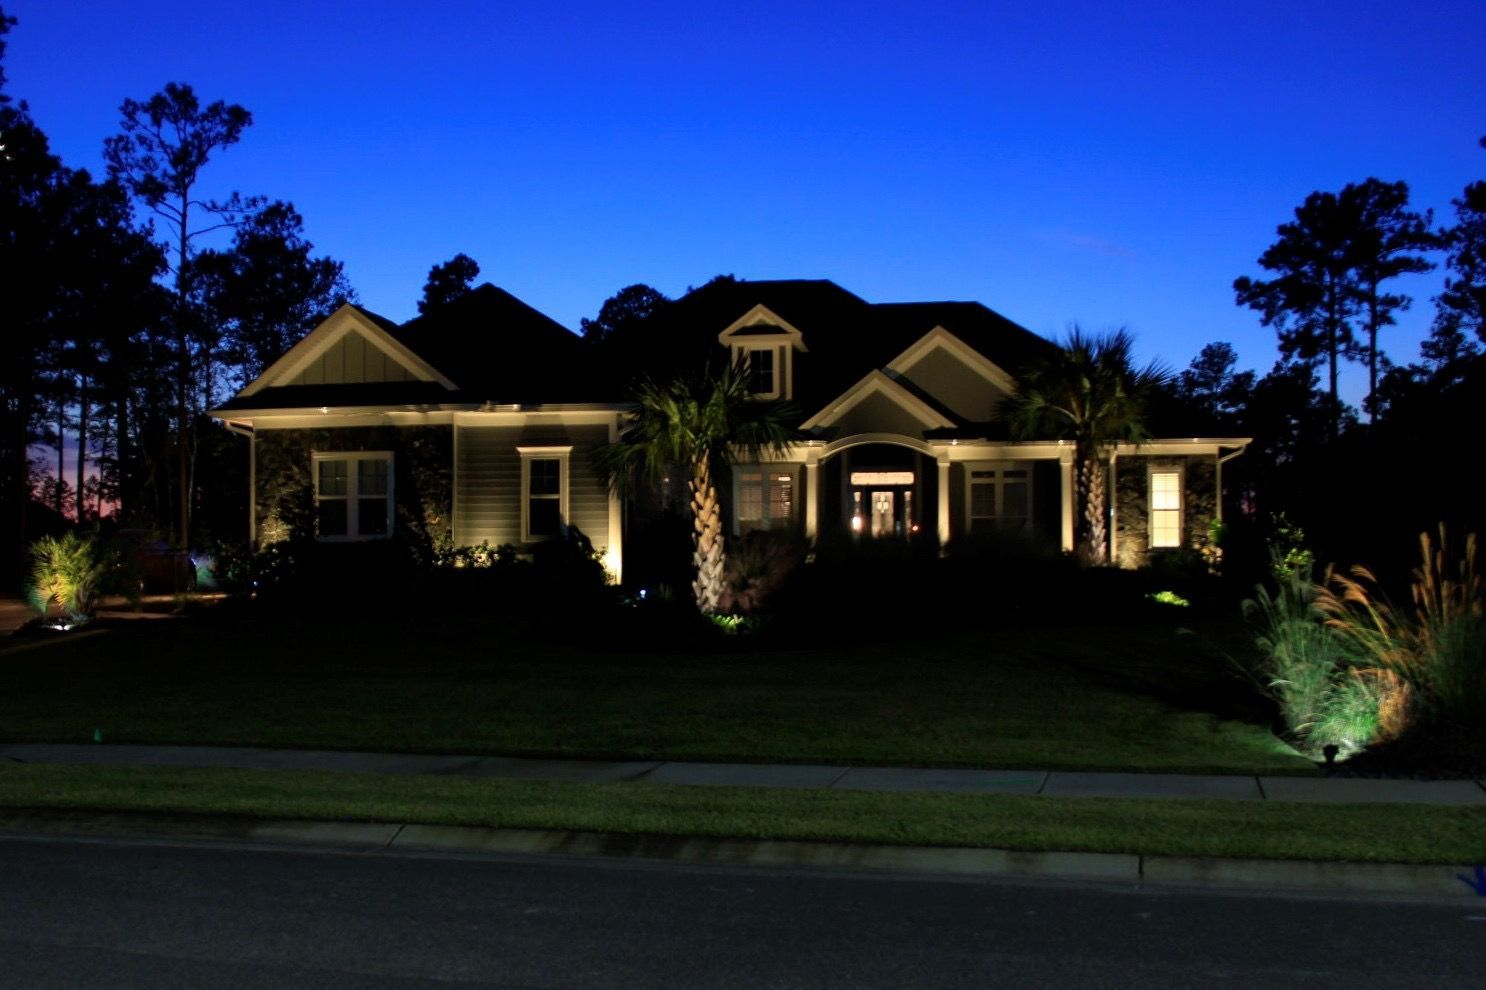 Resort Style Home Lighting Why Do I Need Landscape Lighting You May Wonder Aesthetics Security Outdoorentertainment Curbappeal Need Home Lighting Landscape Lighting Resort Style